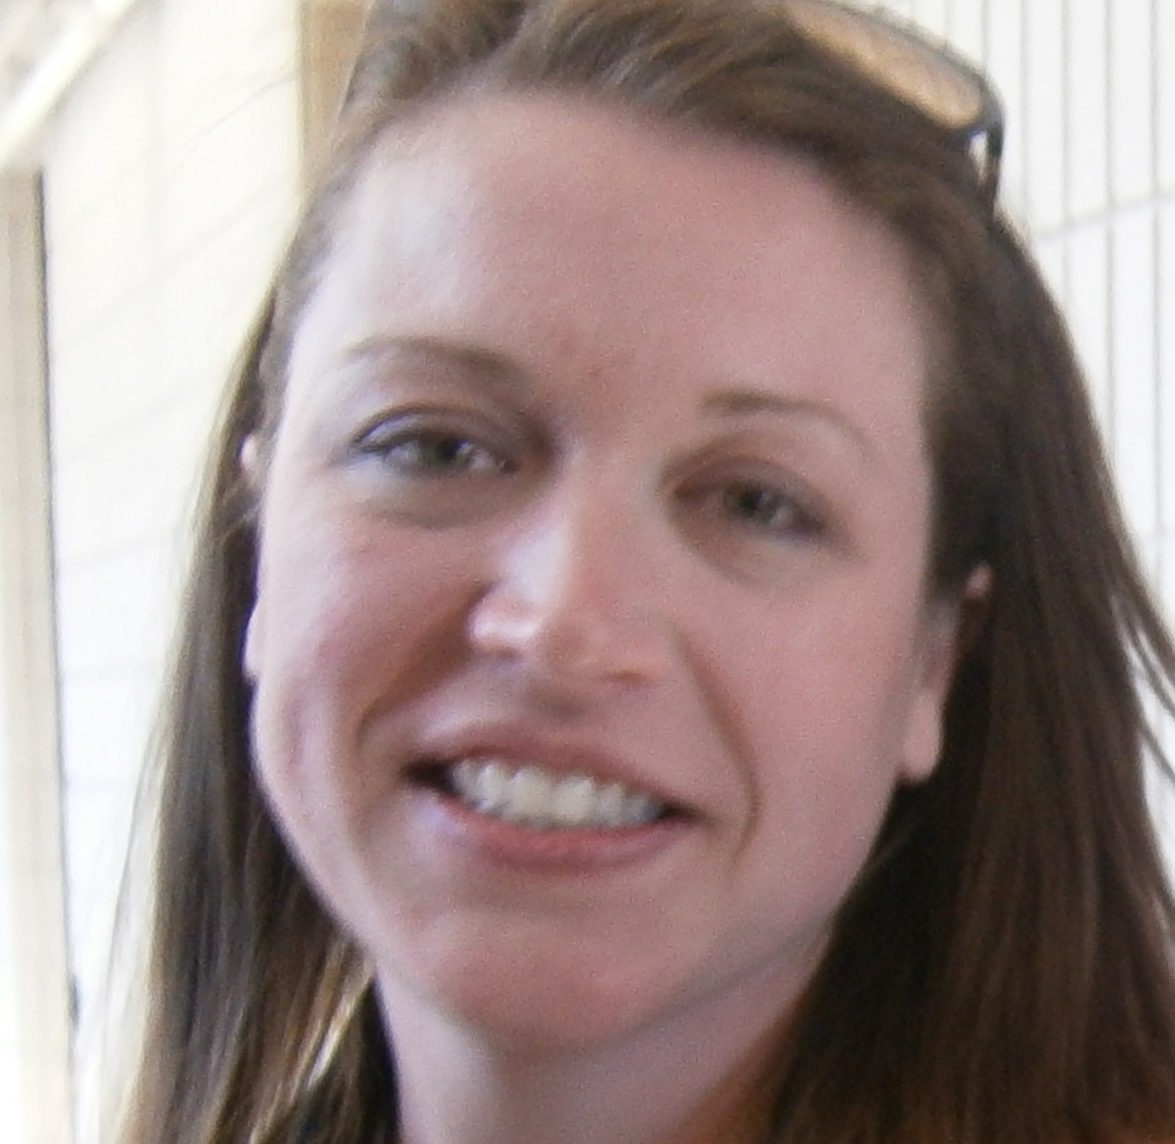 AWARE Simoe board member Stephanie MacLellan is among those who have applied to represent Ward 5